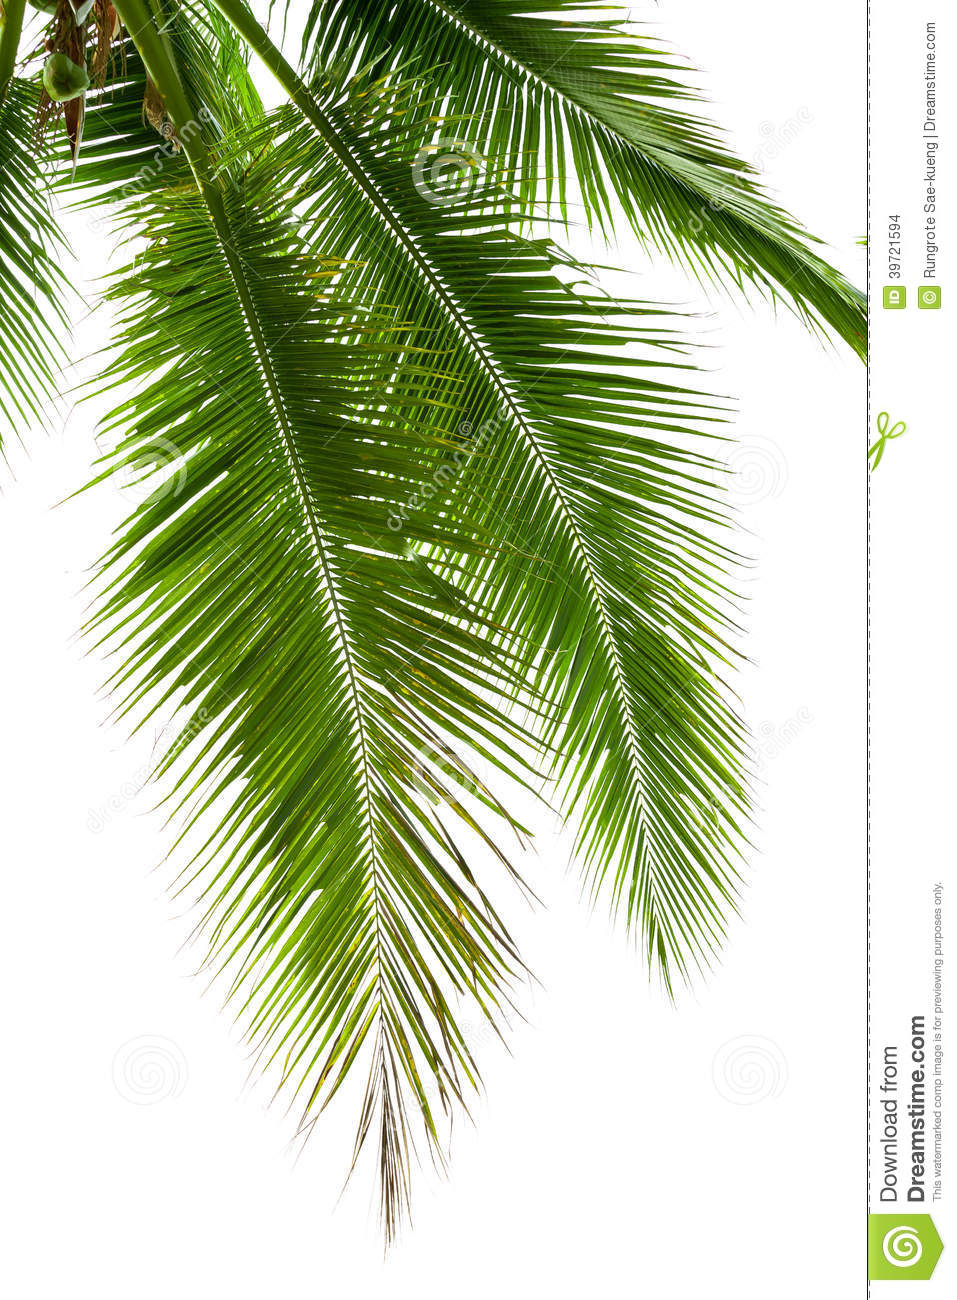 Leaves Of Coconut Tree Isolated On White Background Stock ...